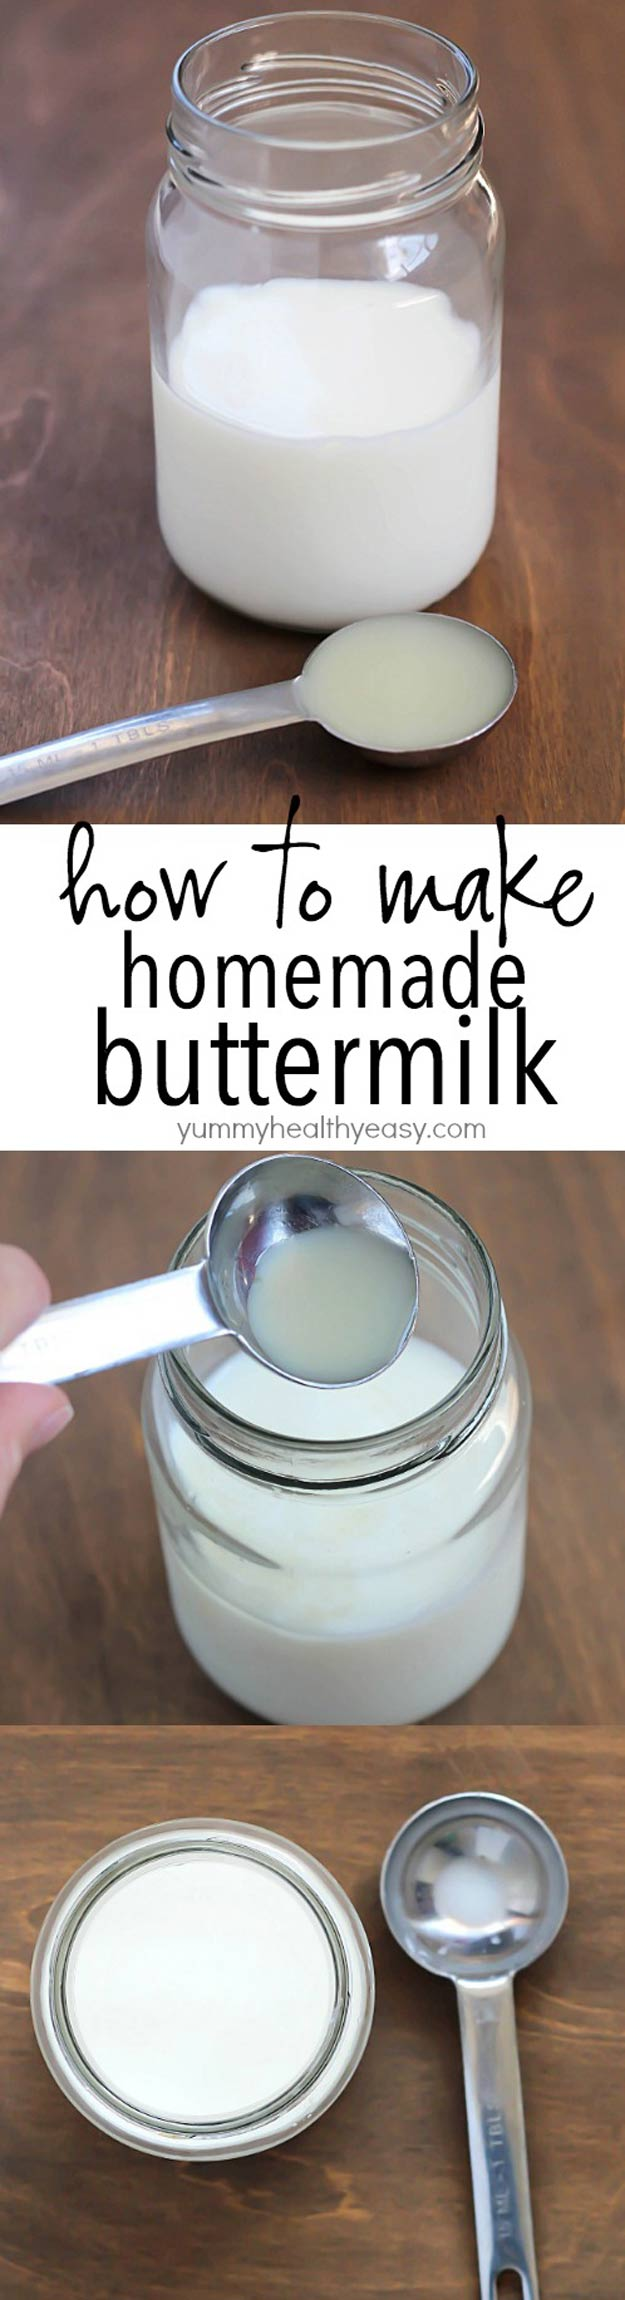 Coolest Cooking Hacks, Tips and Tricks for Easy Meal Prep, Recipe Shortcuts and Quick Ideas for Food | Make Easy Homemade Buttermilk | http://cooking-tips-diy-kitchen-hacks